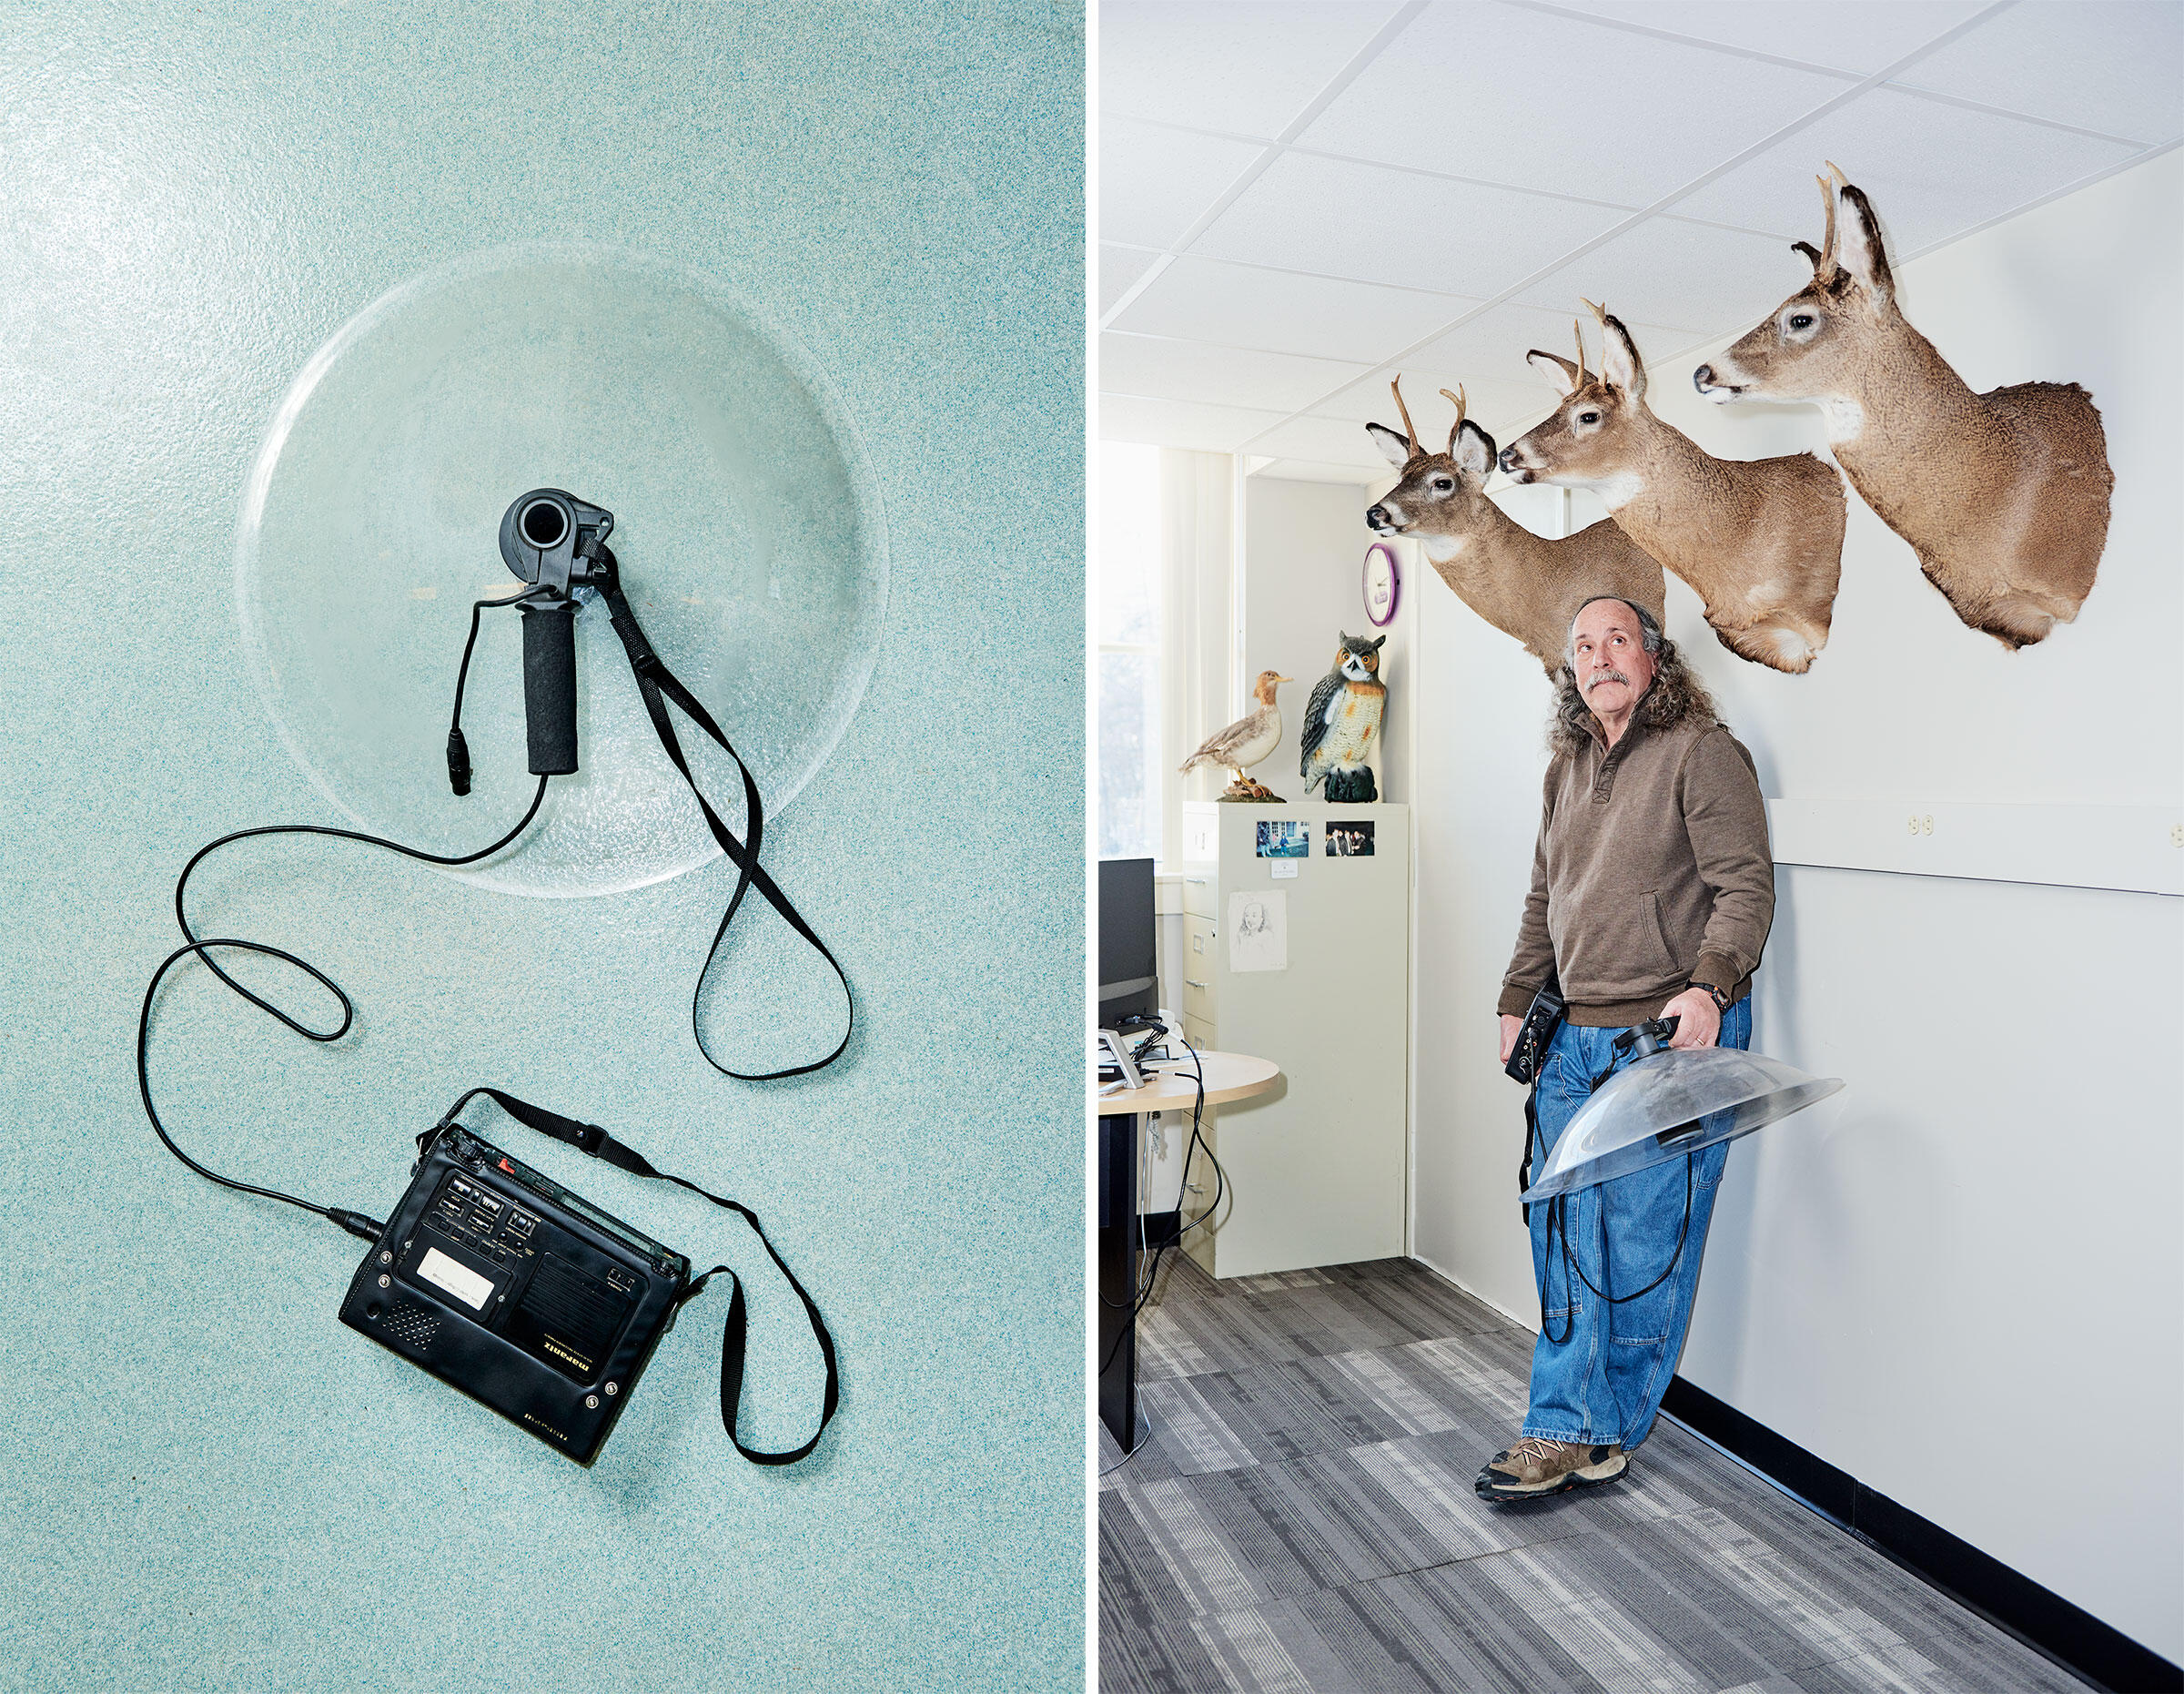 From left: The device Jay Pitocchelli uses to record birdsong; Pitocchelli in his office at Saint Anselm College in New Hampshire. Photos: Tony Luong